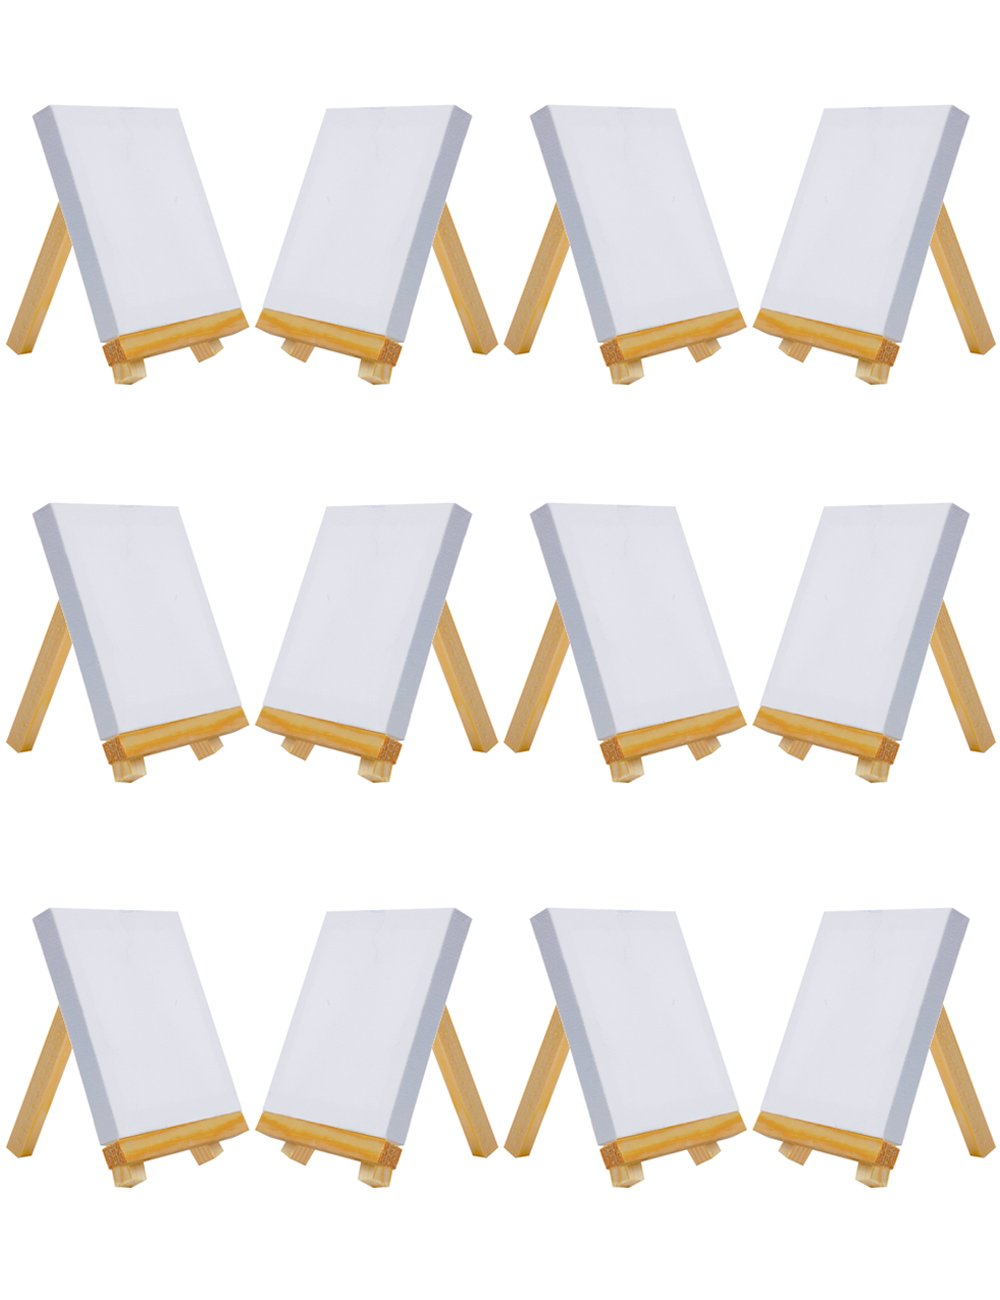 MEEDEN Mini Canvas & Easel Set of 12 PCS, 4 by 4 Small Stretched Canvas with 3 by 5 Tiny Wood Easel for Painting Craft Drawing Decoration Gift